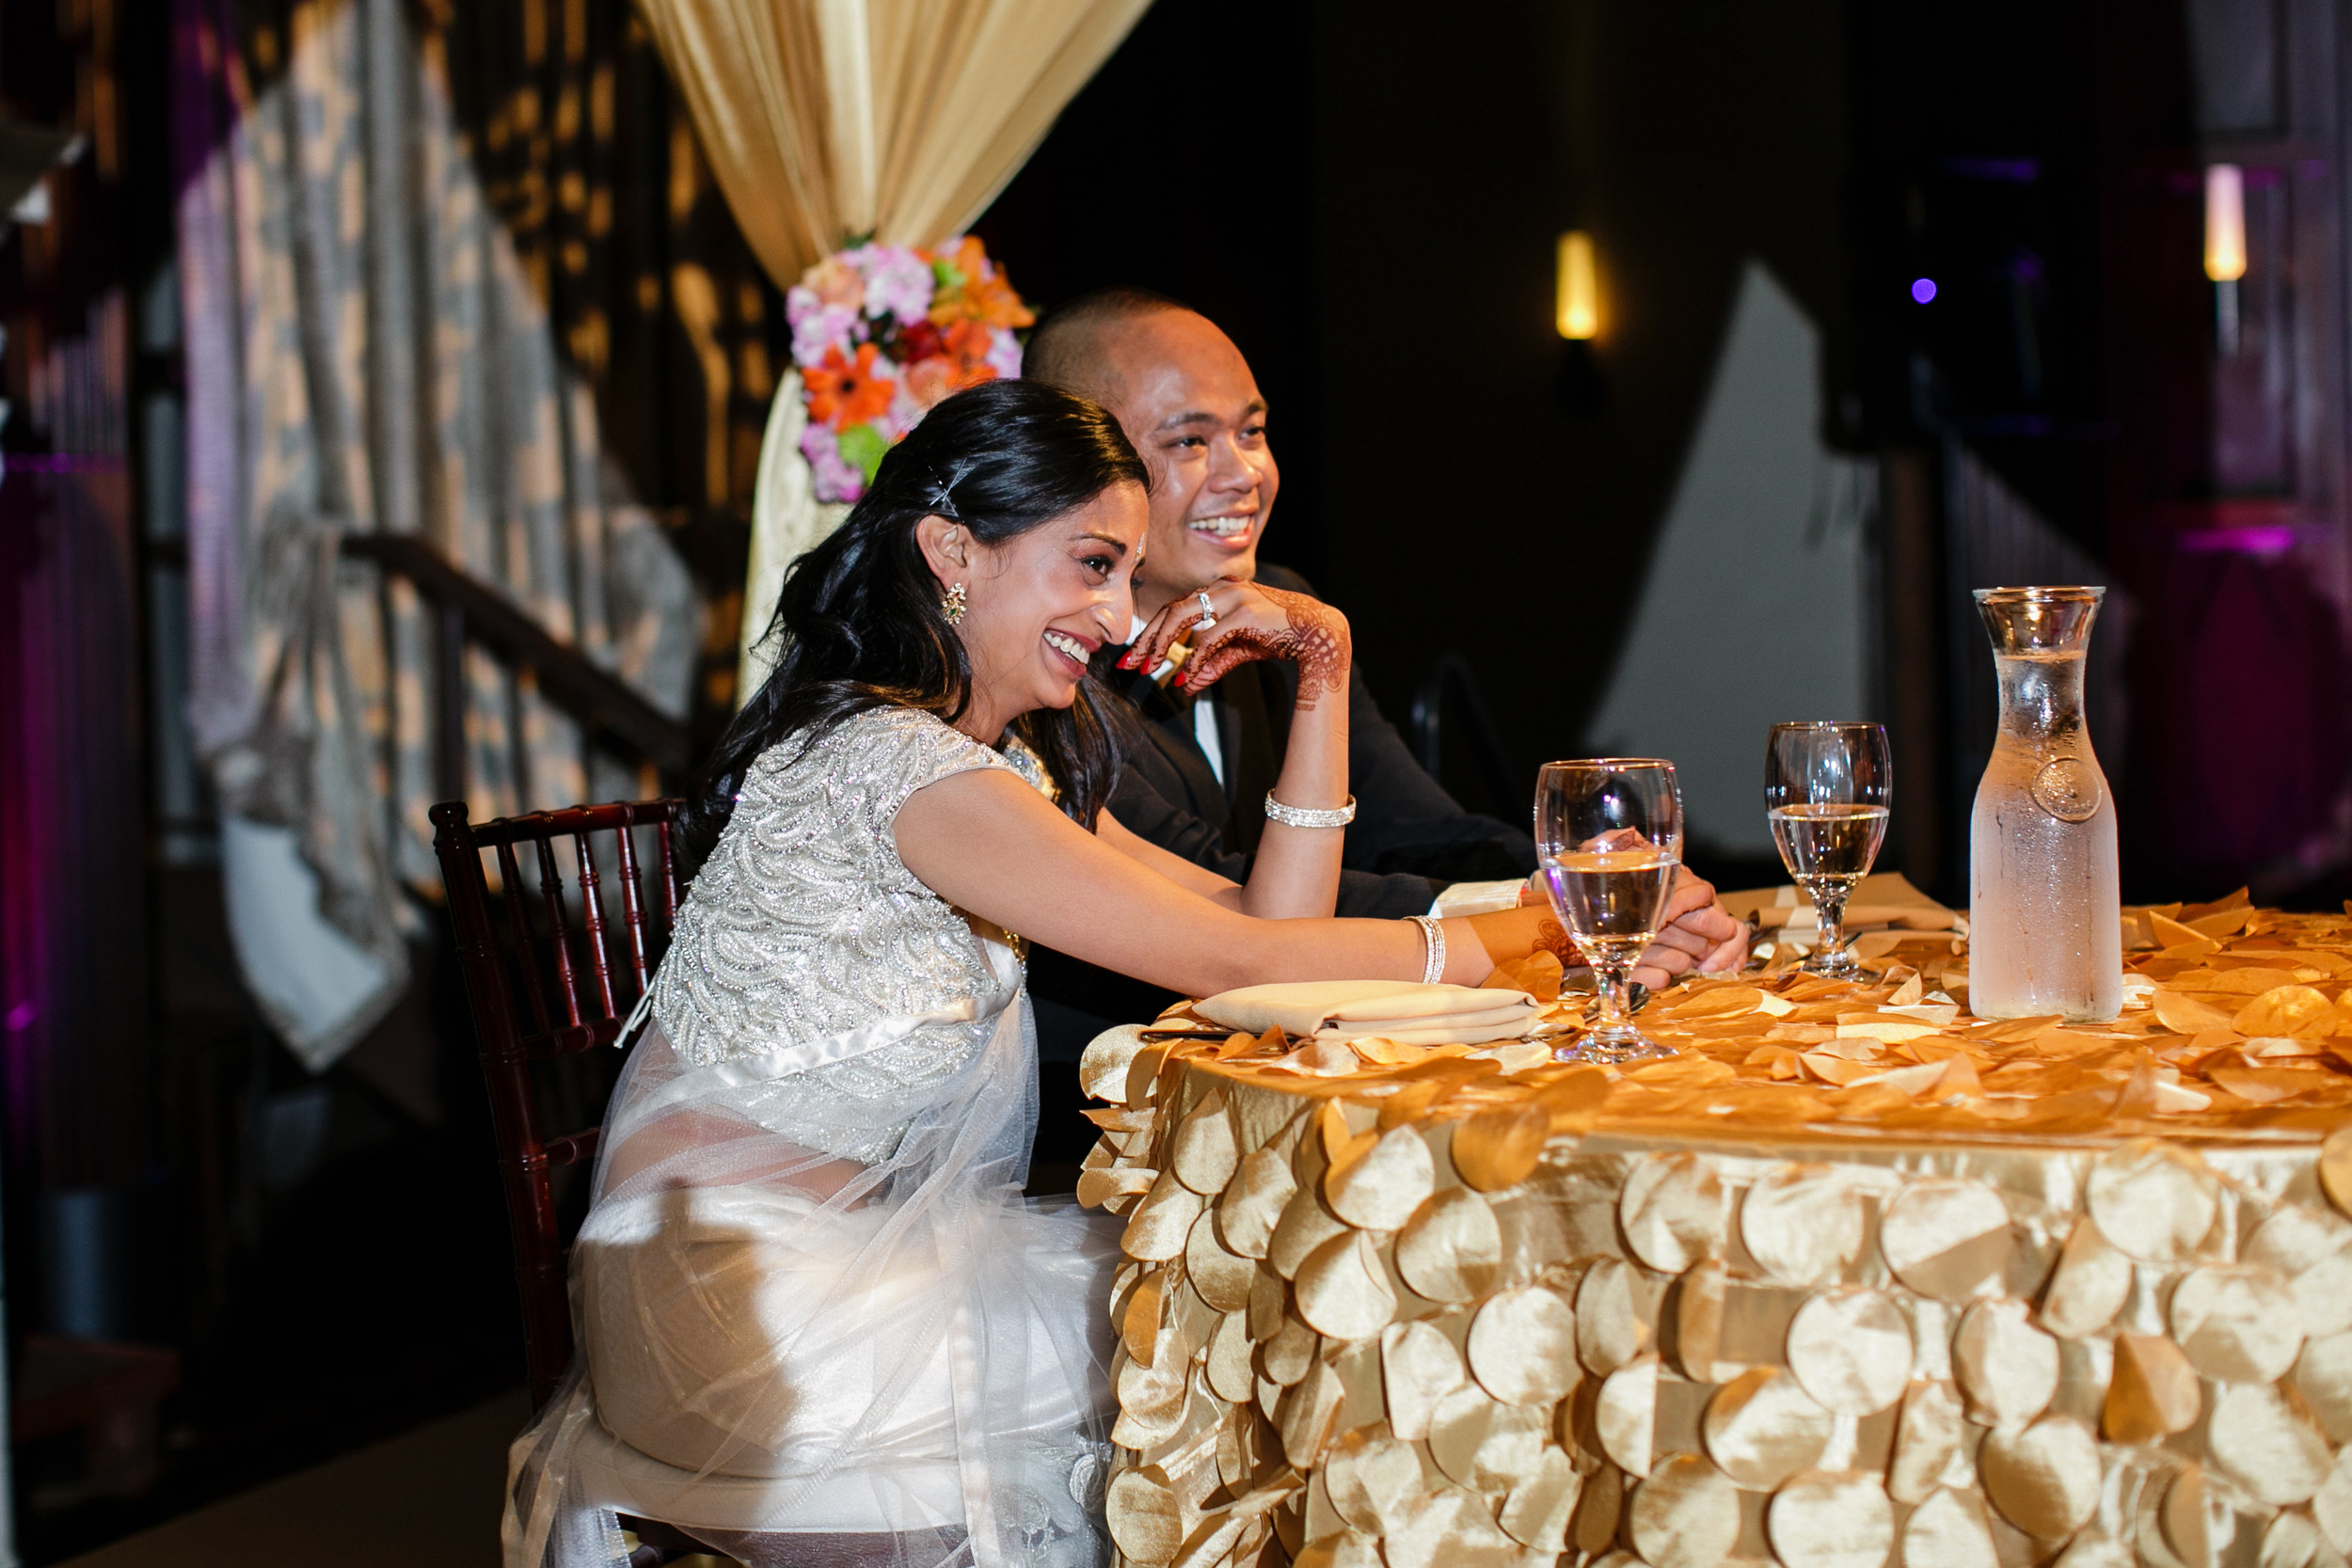 AnaisEvents_JihanCerdaPhotography_Priya-and-Jason - 149.jpg